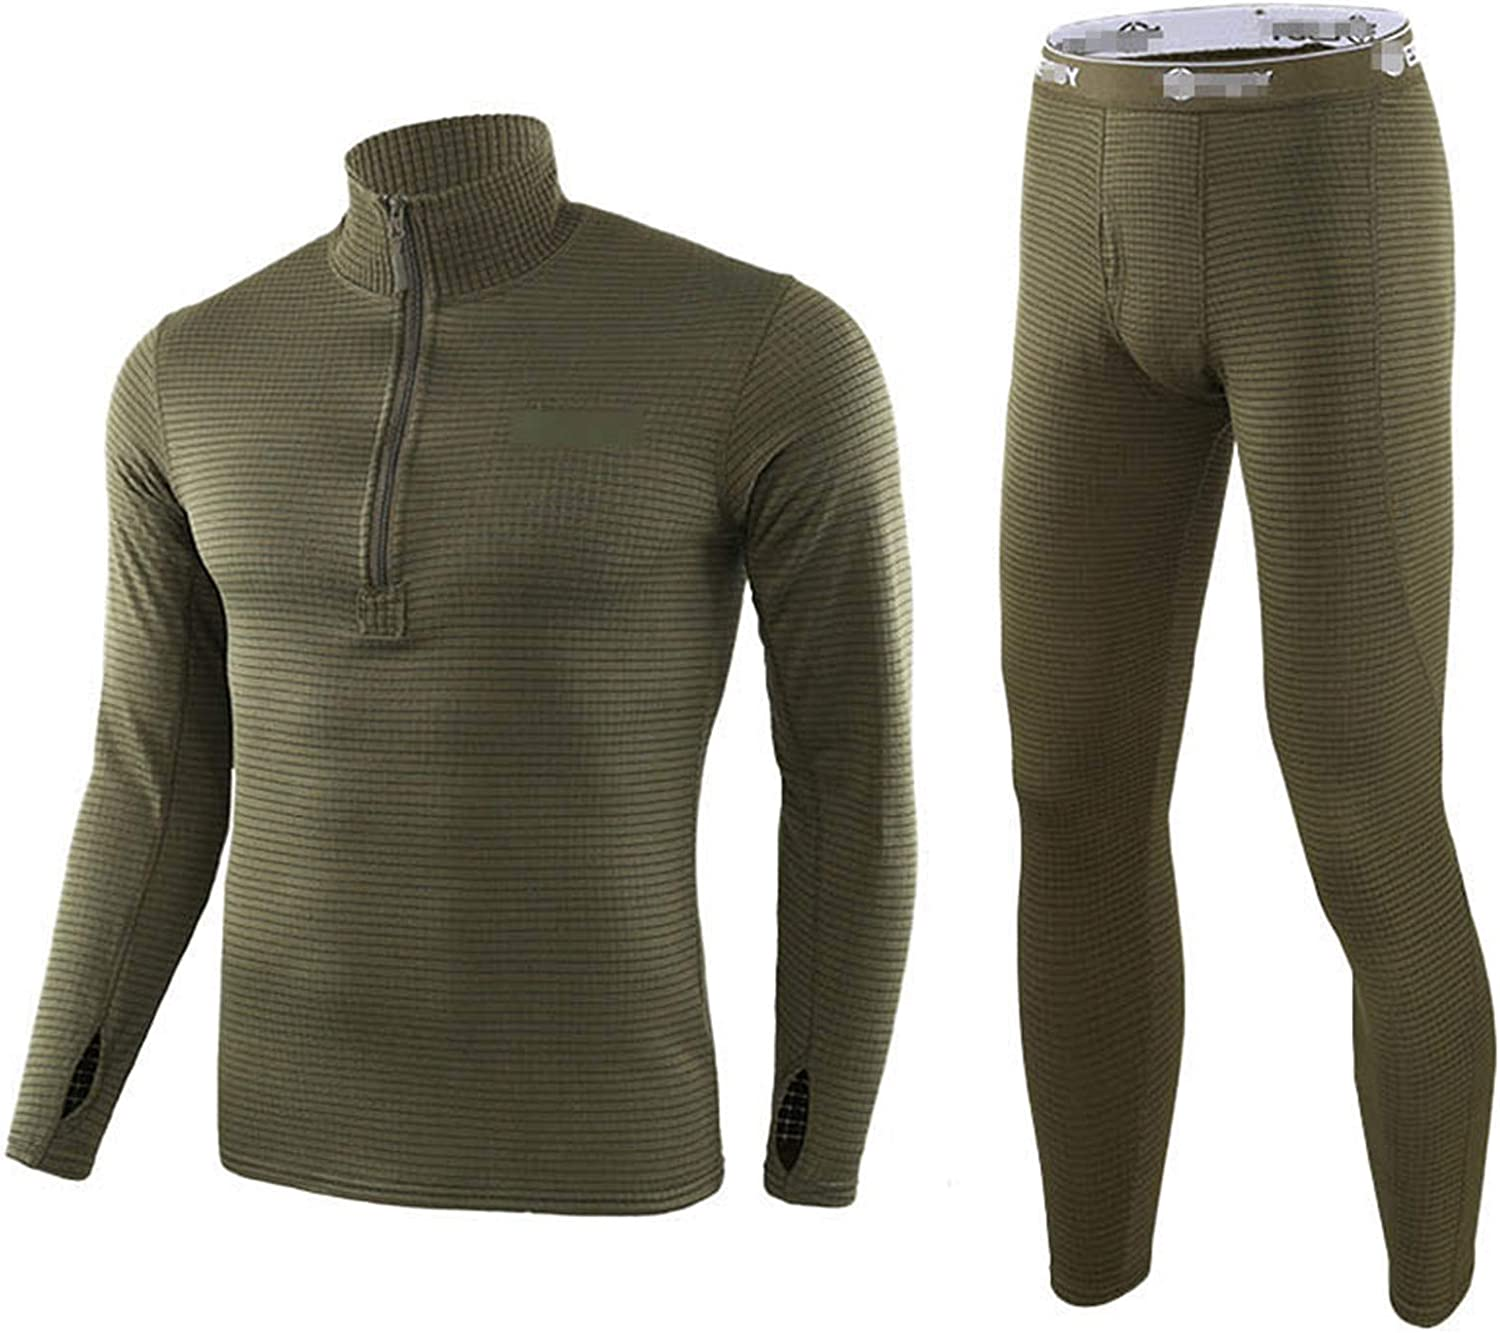 Men's Fleece Lined Thermal Men's Fleece Lined Thermal Underwear Set Motorcycle Skiing Base Layer Winter Warm Long Johns Shirts Army Green XXL